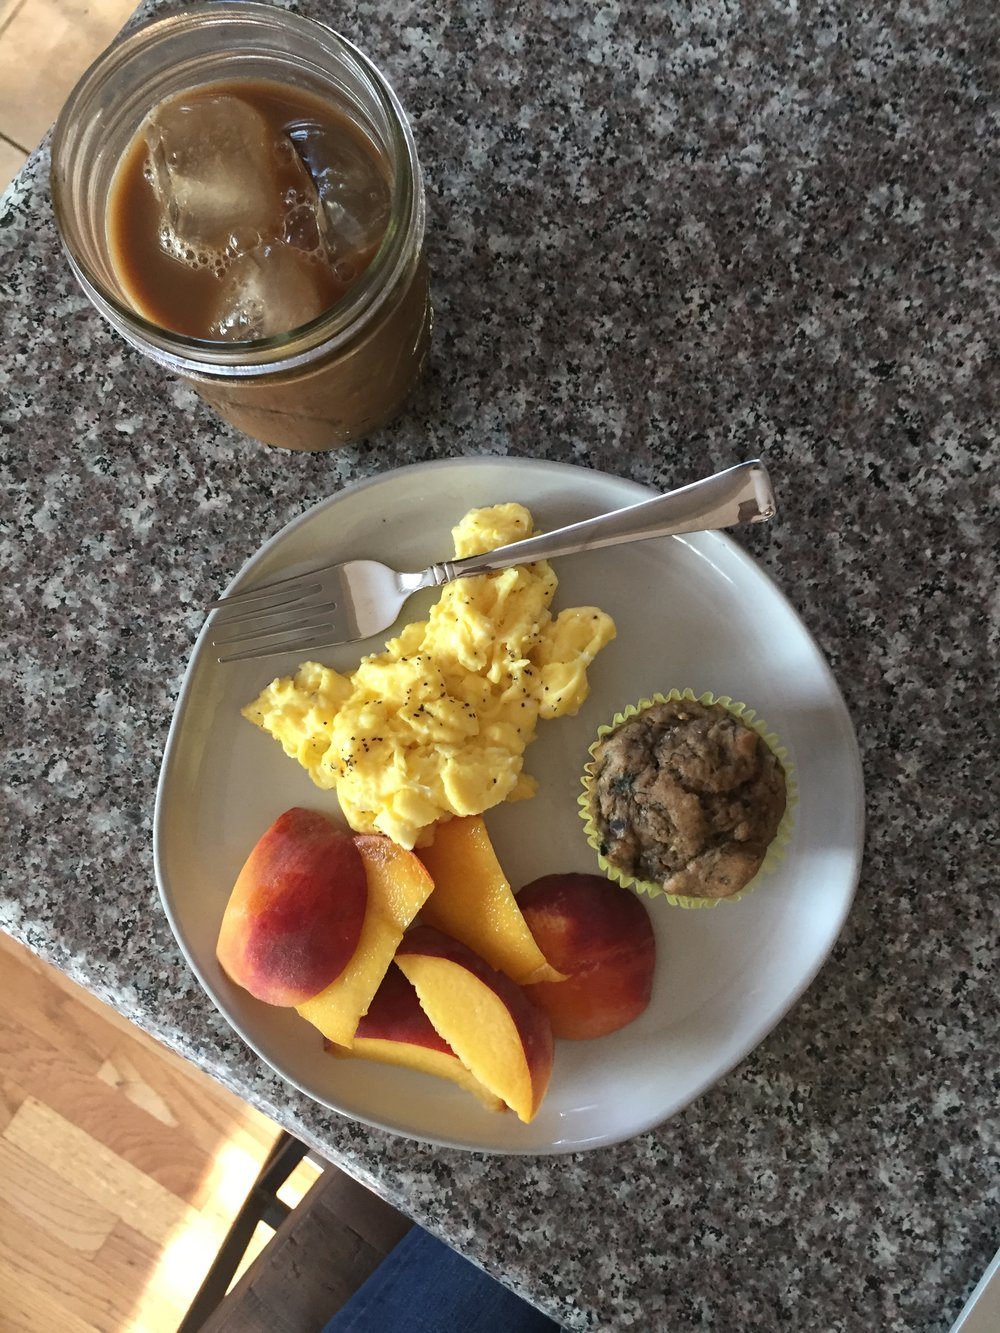 balanced breakfast of eggs, muffin and peach